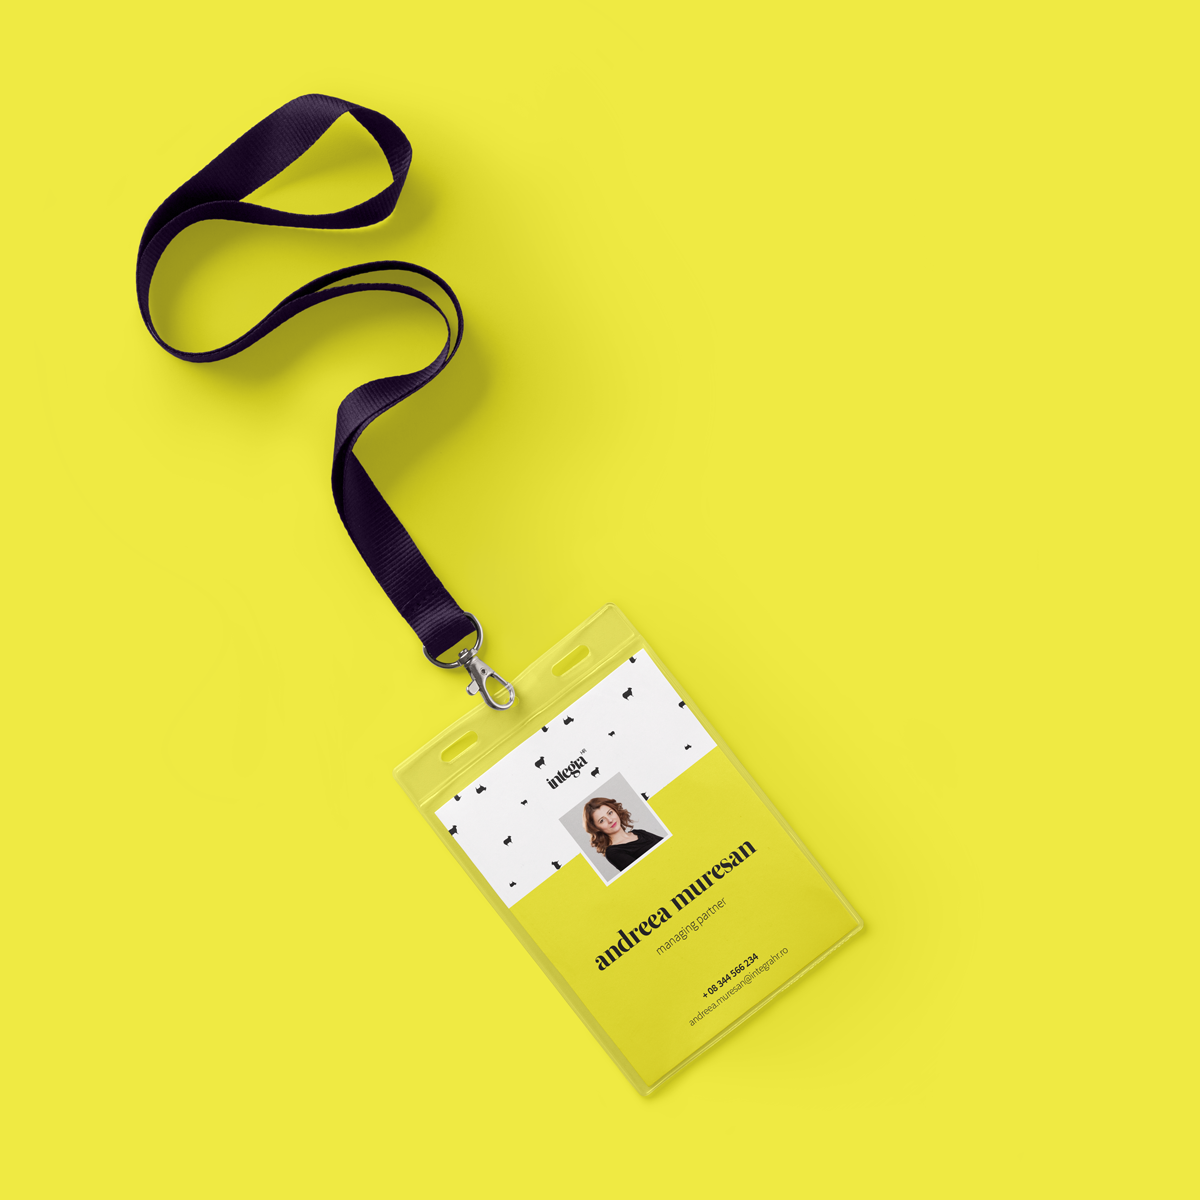 ID-Card-Holder-Mockup-vol-2.png